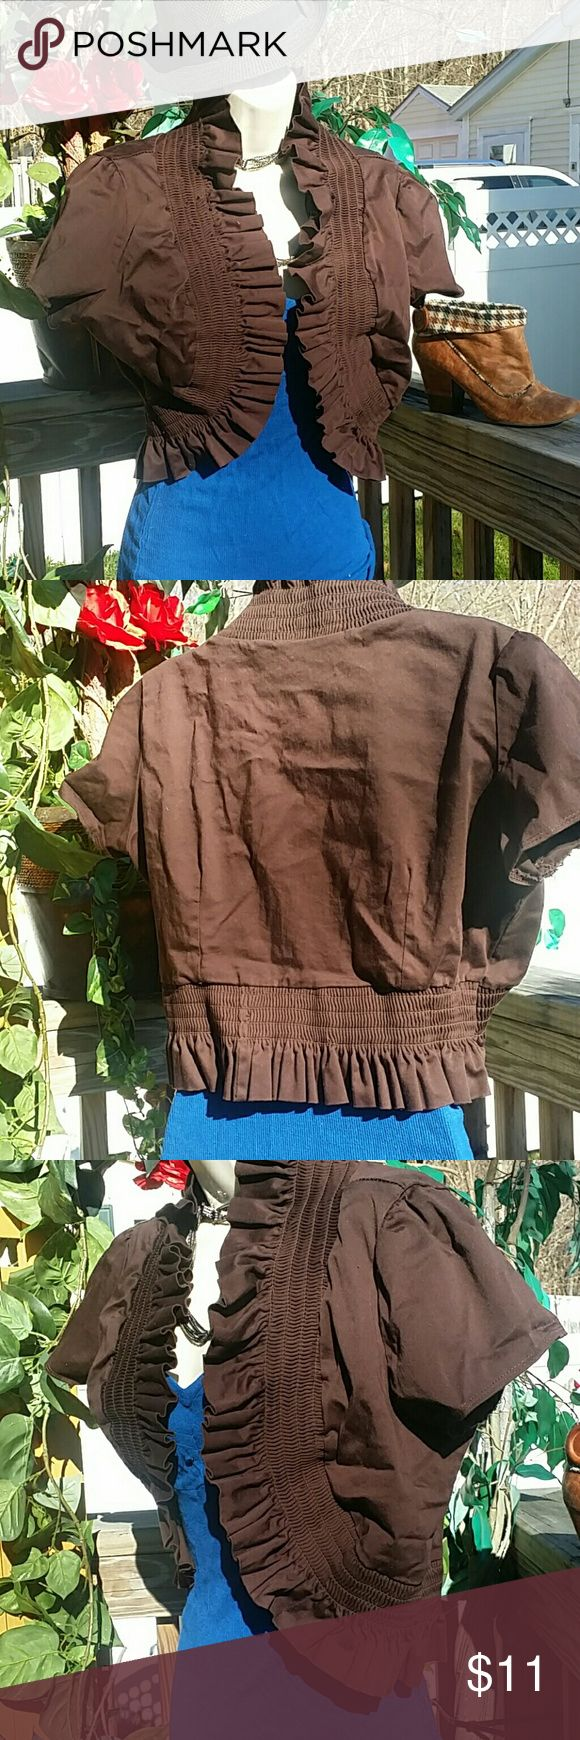 🌰SEXY GODDESS TOP GREAT FOR T-DAY! Add on to any outfit! Jeans Leggins you name it! Beautiful brown, I would say size med but can fit so many! It has large arm openings this is fantastic!  elastic and ruffled all around the bottom and top for the gathered look! Super unique!  Thanks for looking make an offer! WILL STEAM BEFORE MAILING ❤ Goddess Jackets & Coats